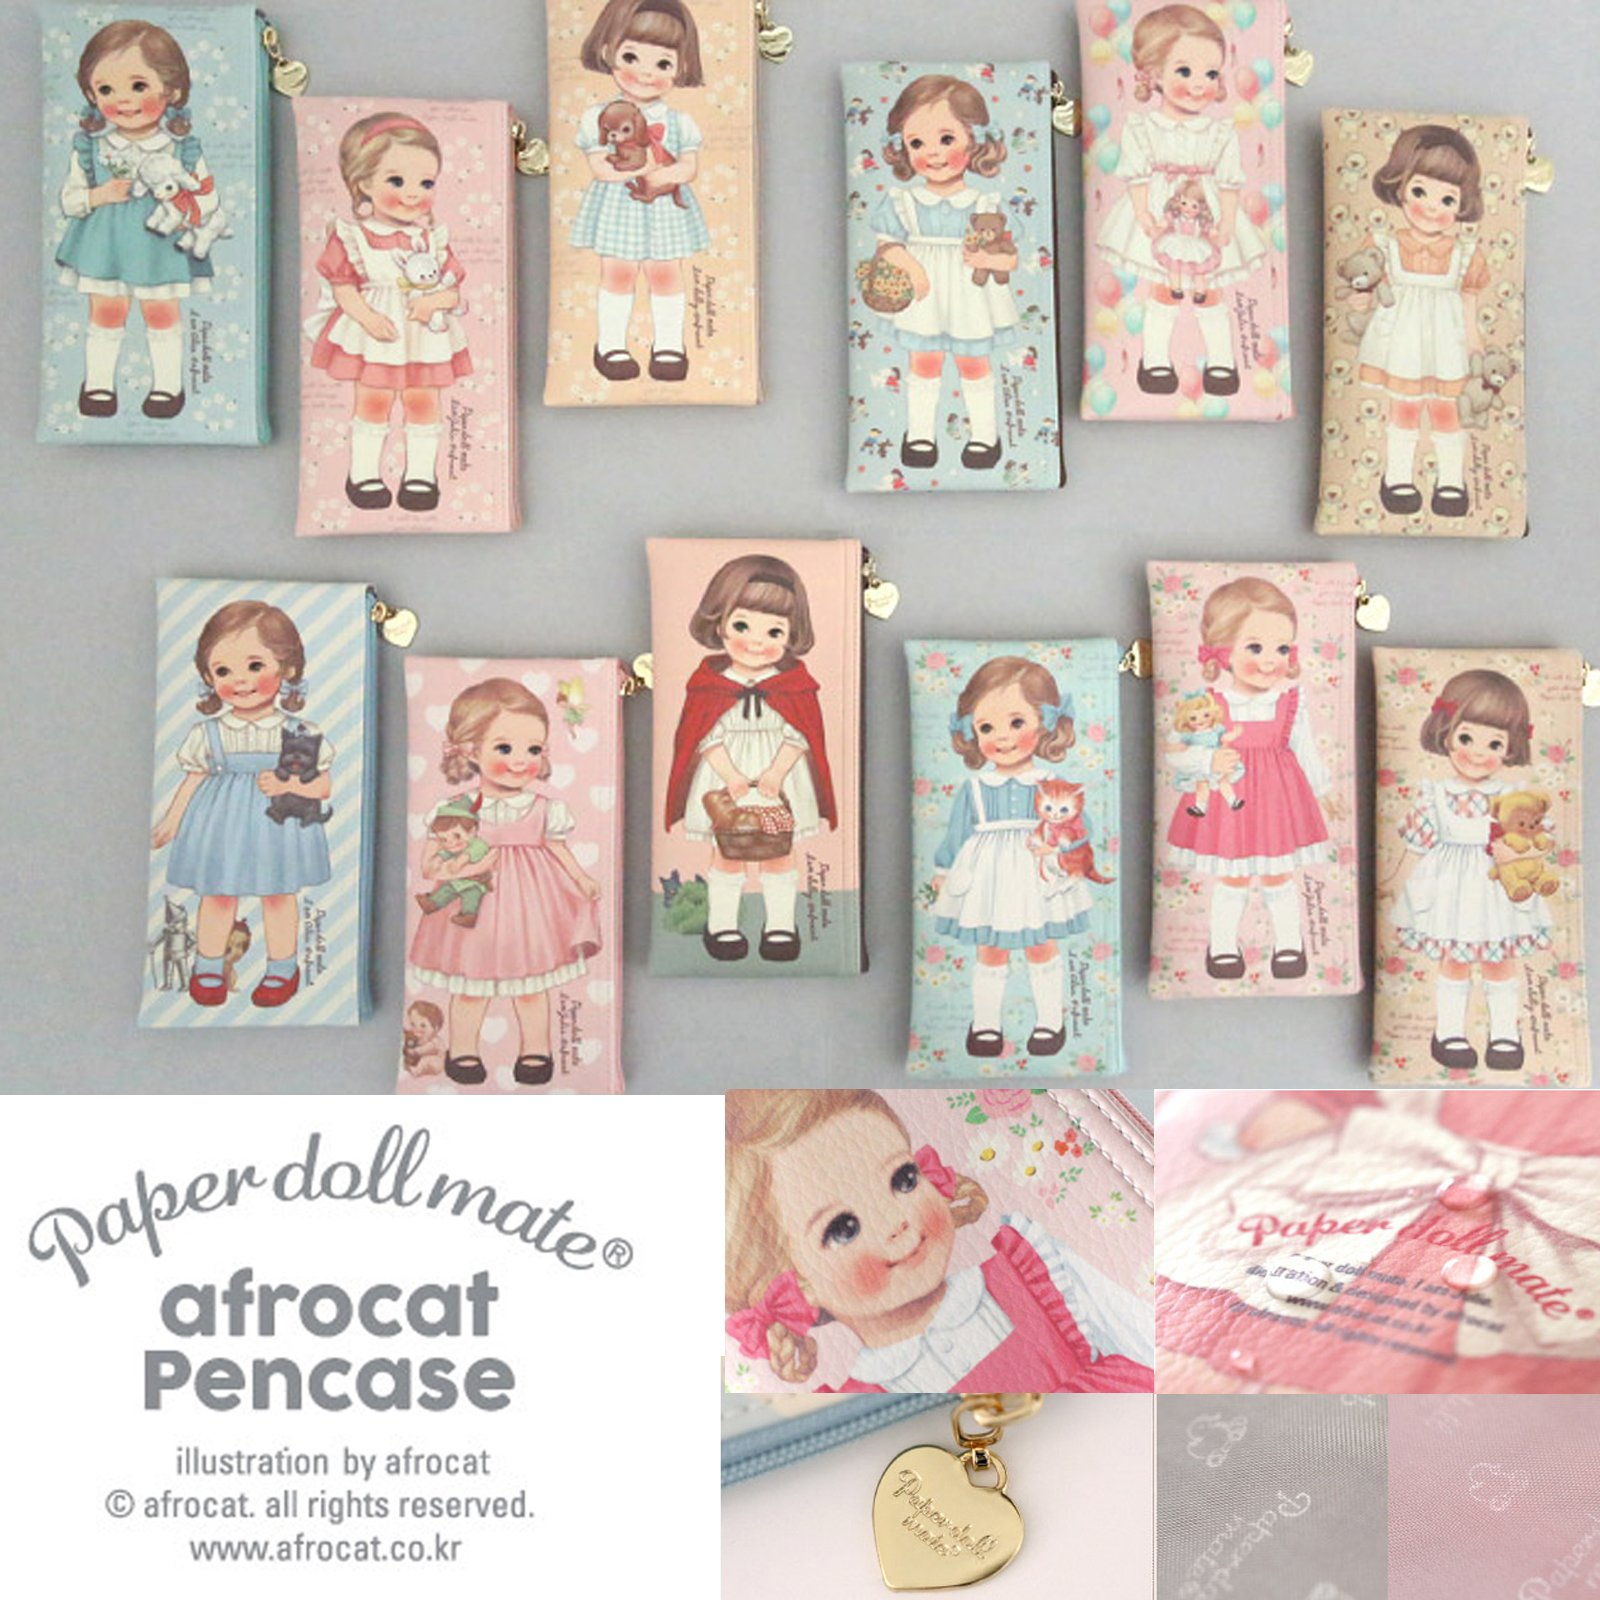 paperdollmate pencase ver007_blooming Alice by paper doll mate (Image #8)